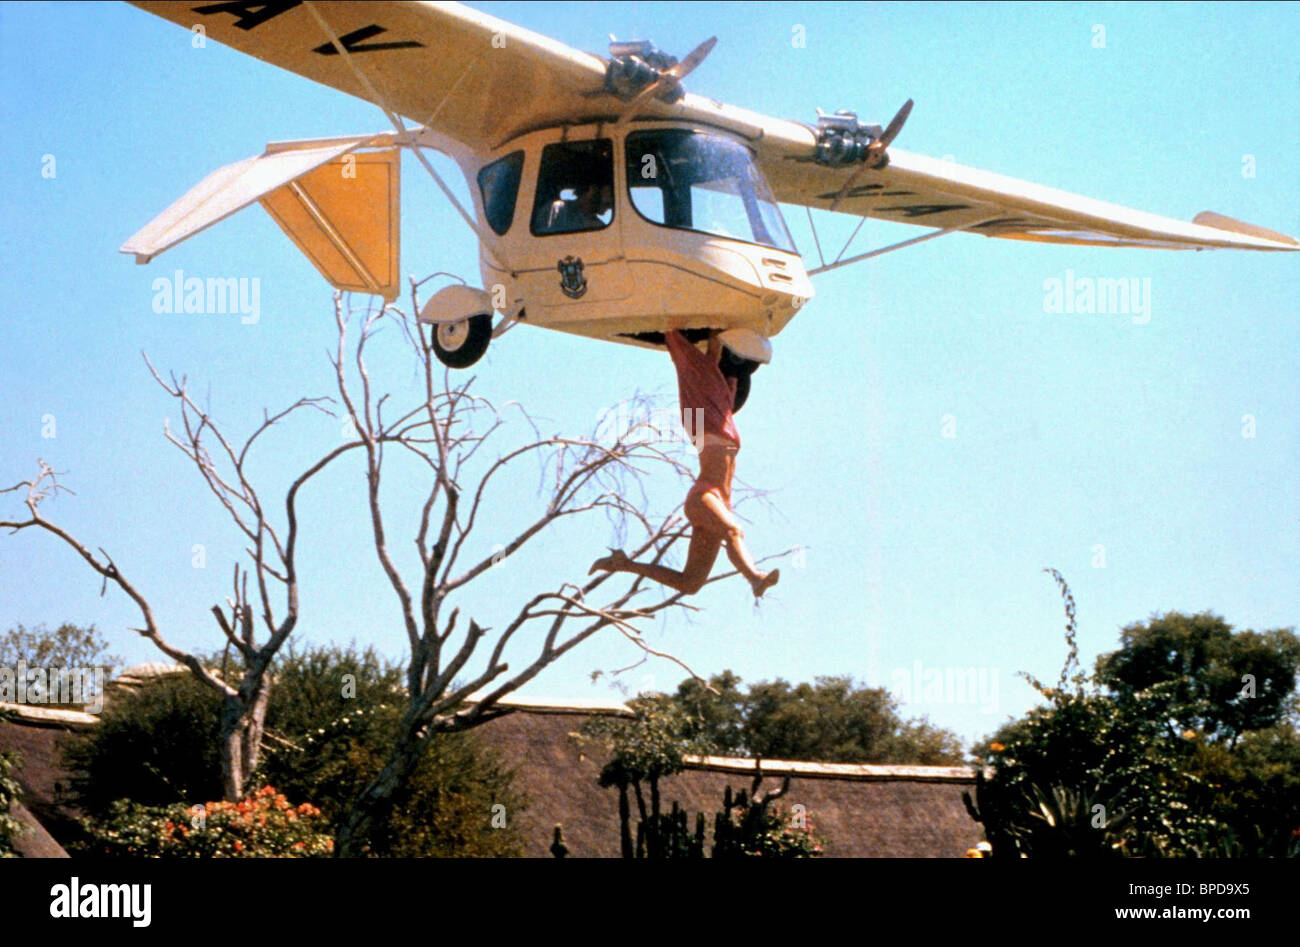 WOMAN HANGS ONTO SMALL PLANE THE GODS MUST BE CRAZY II